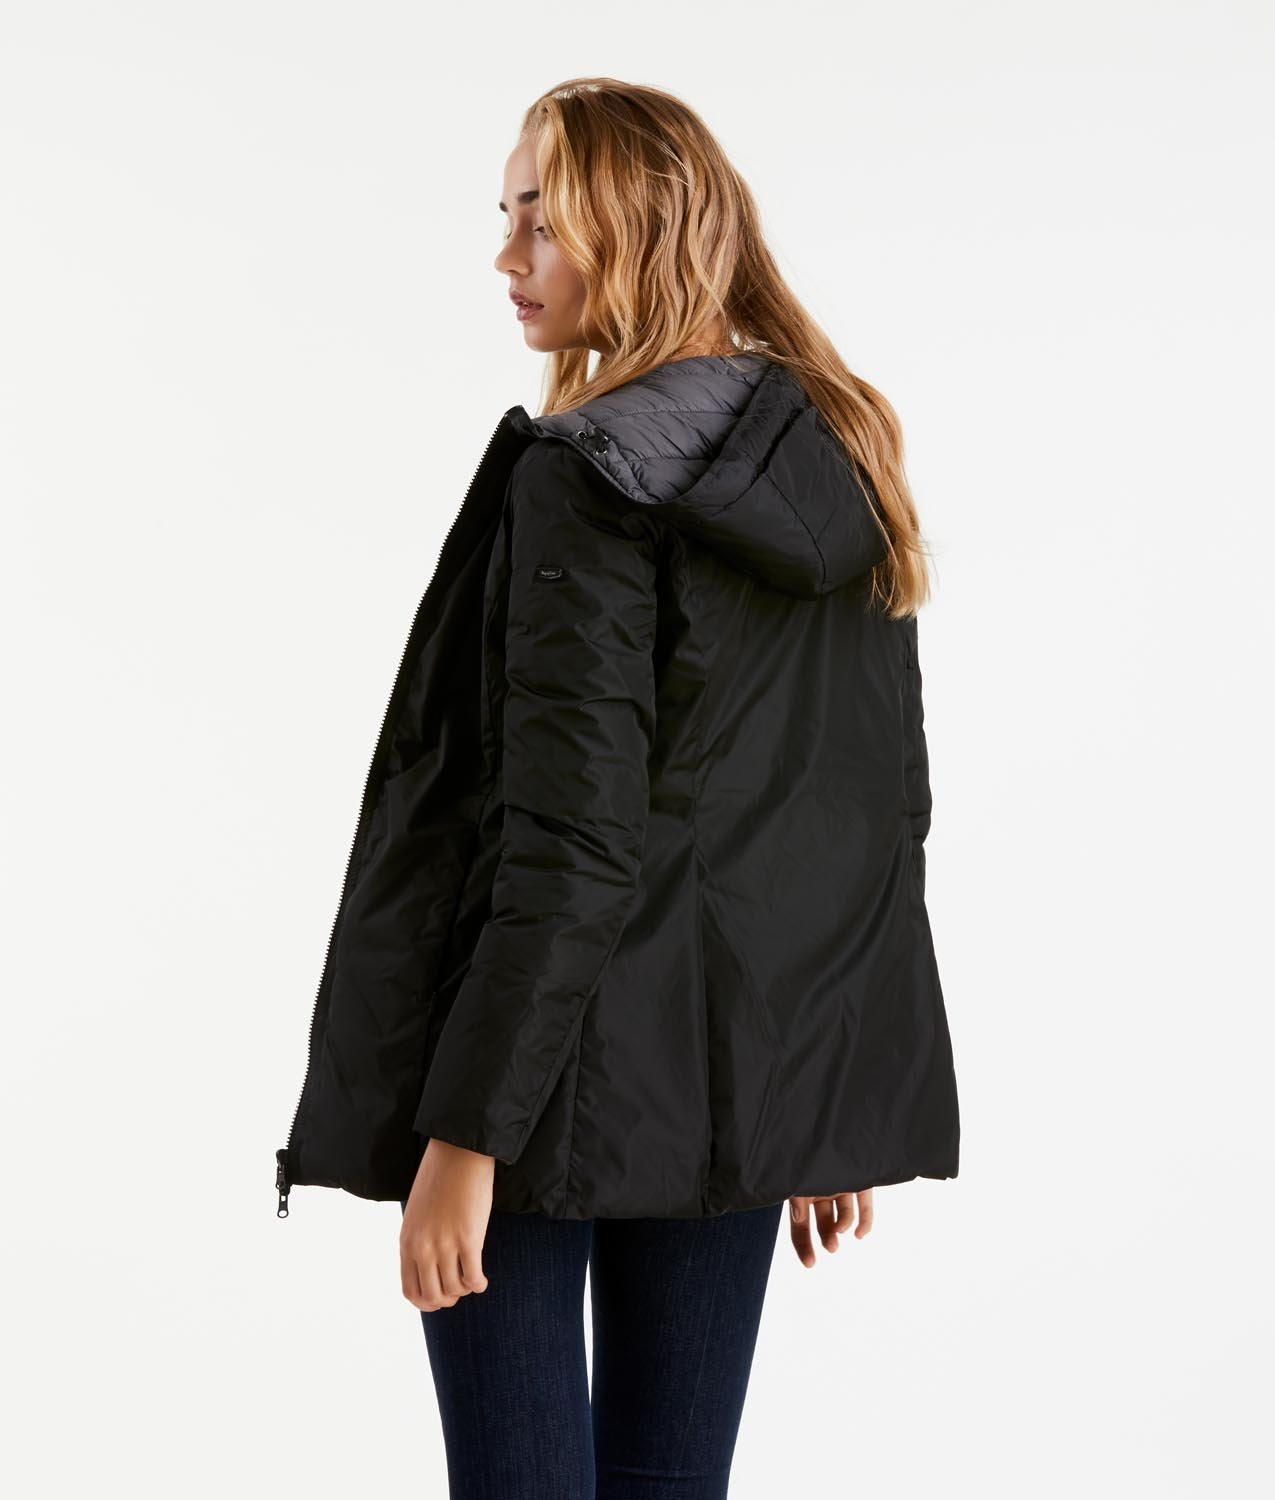 LONG DORIS JACKET